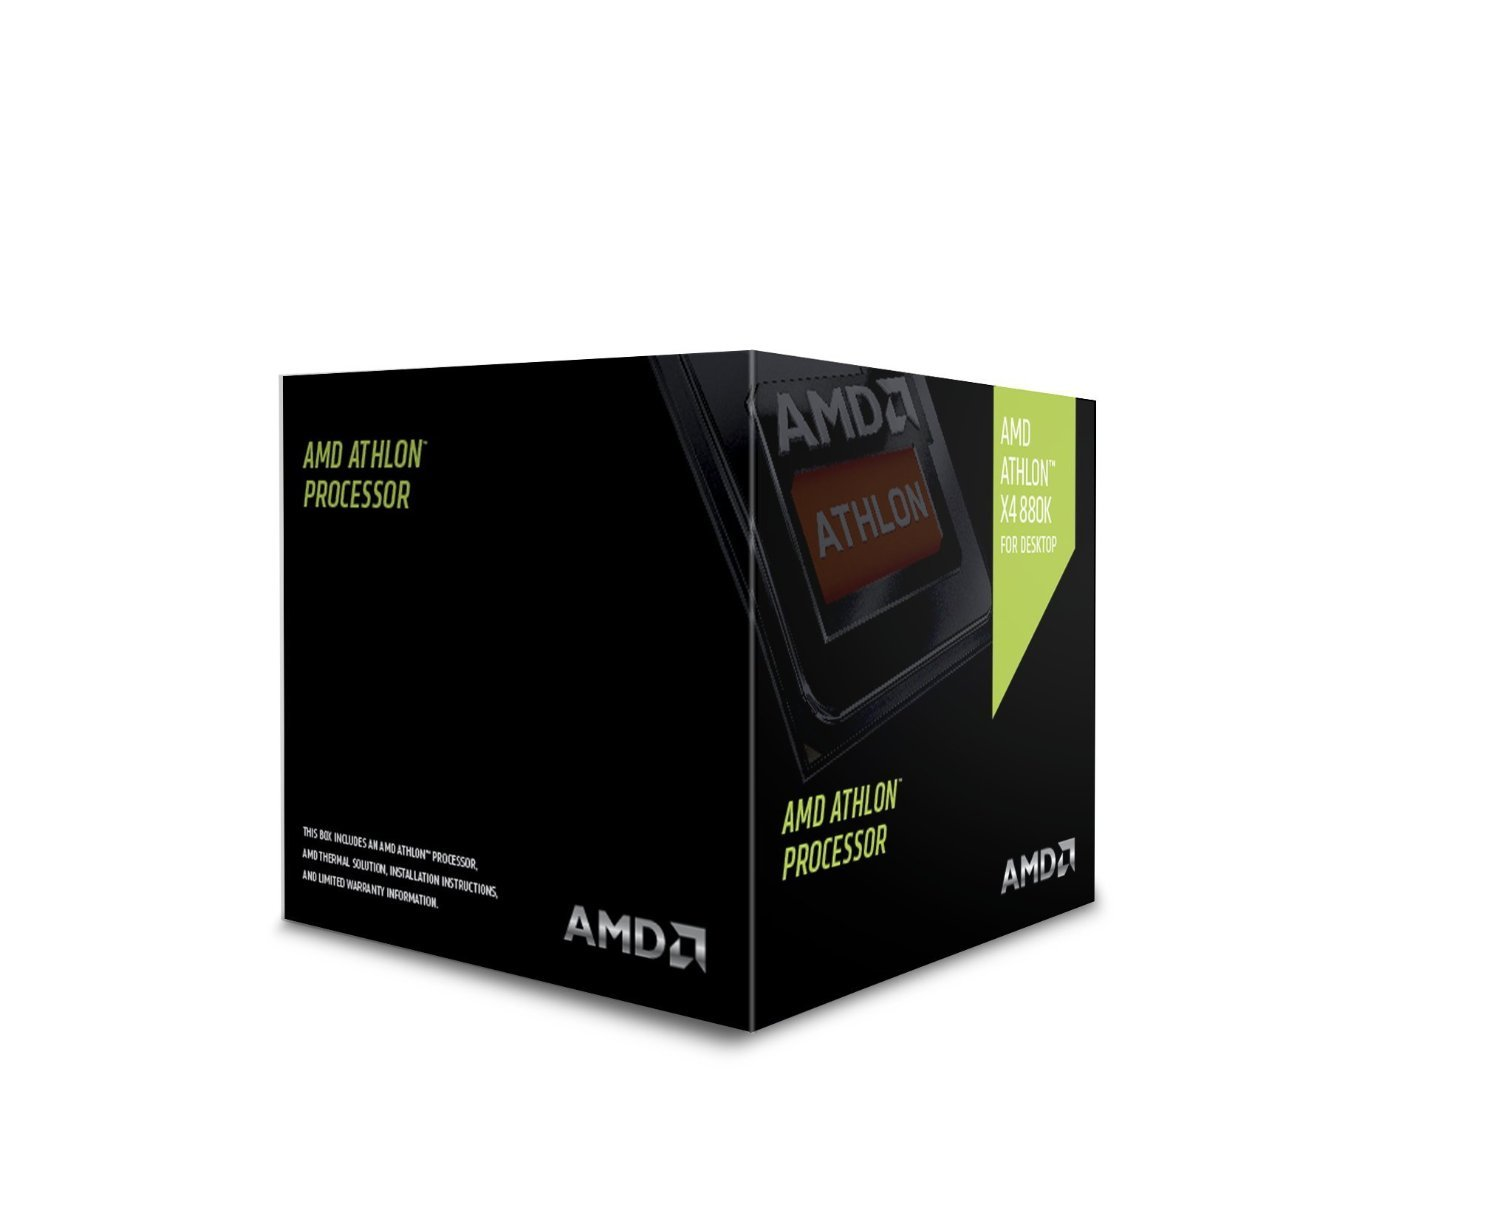 AMD Athlon X4 880K 4GHz 4MB L2 Box - processors (AMD Athlon X4, Socket FM2+, PC, 880K, L2, DDR3-SDR